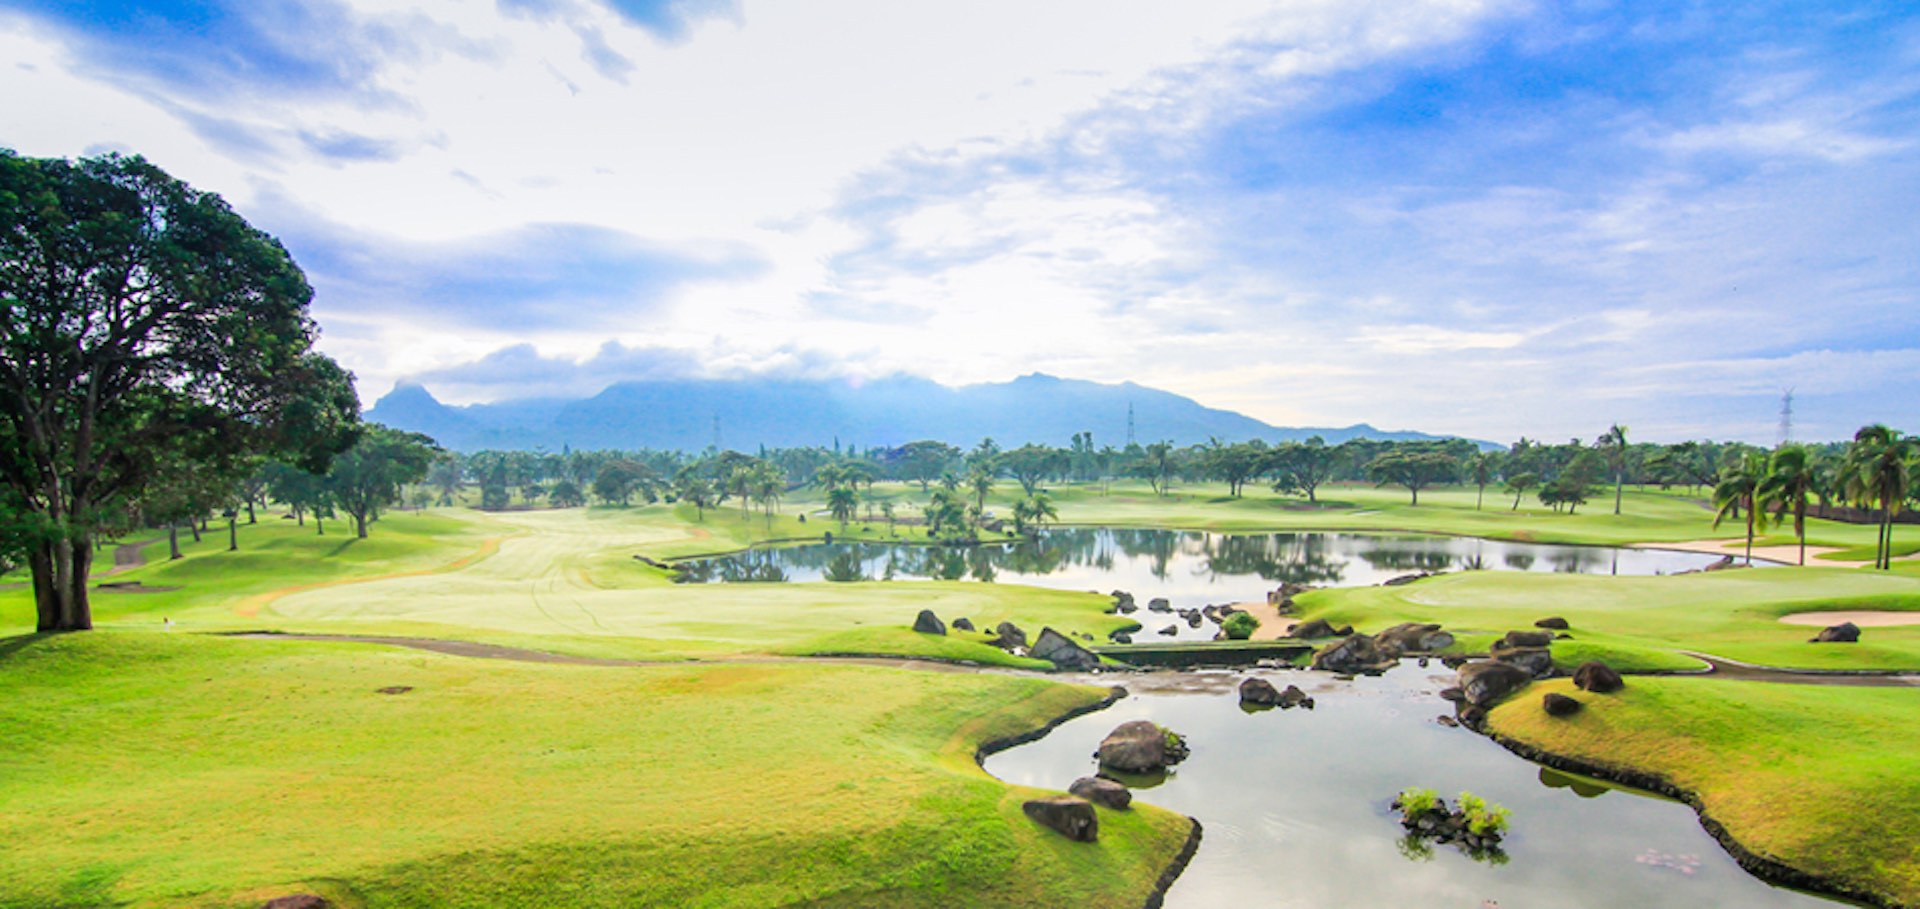 Golfing in the Philippines